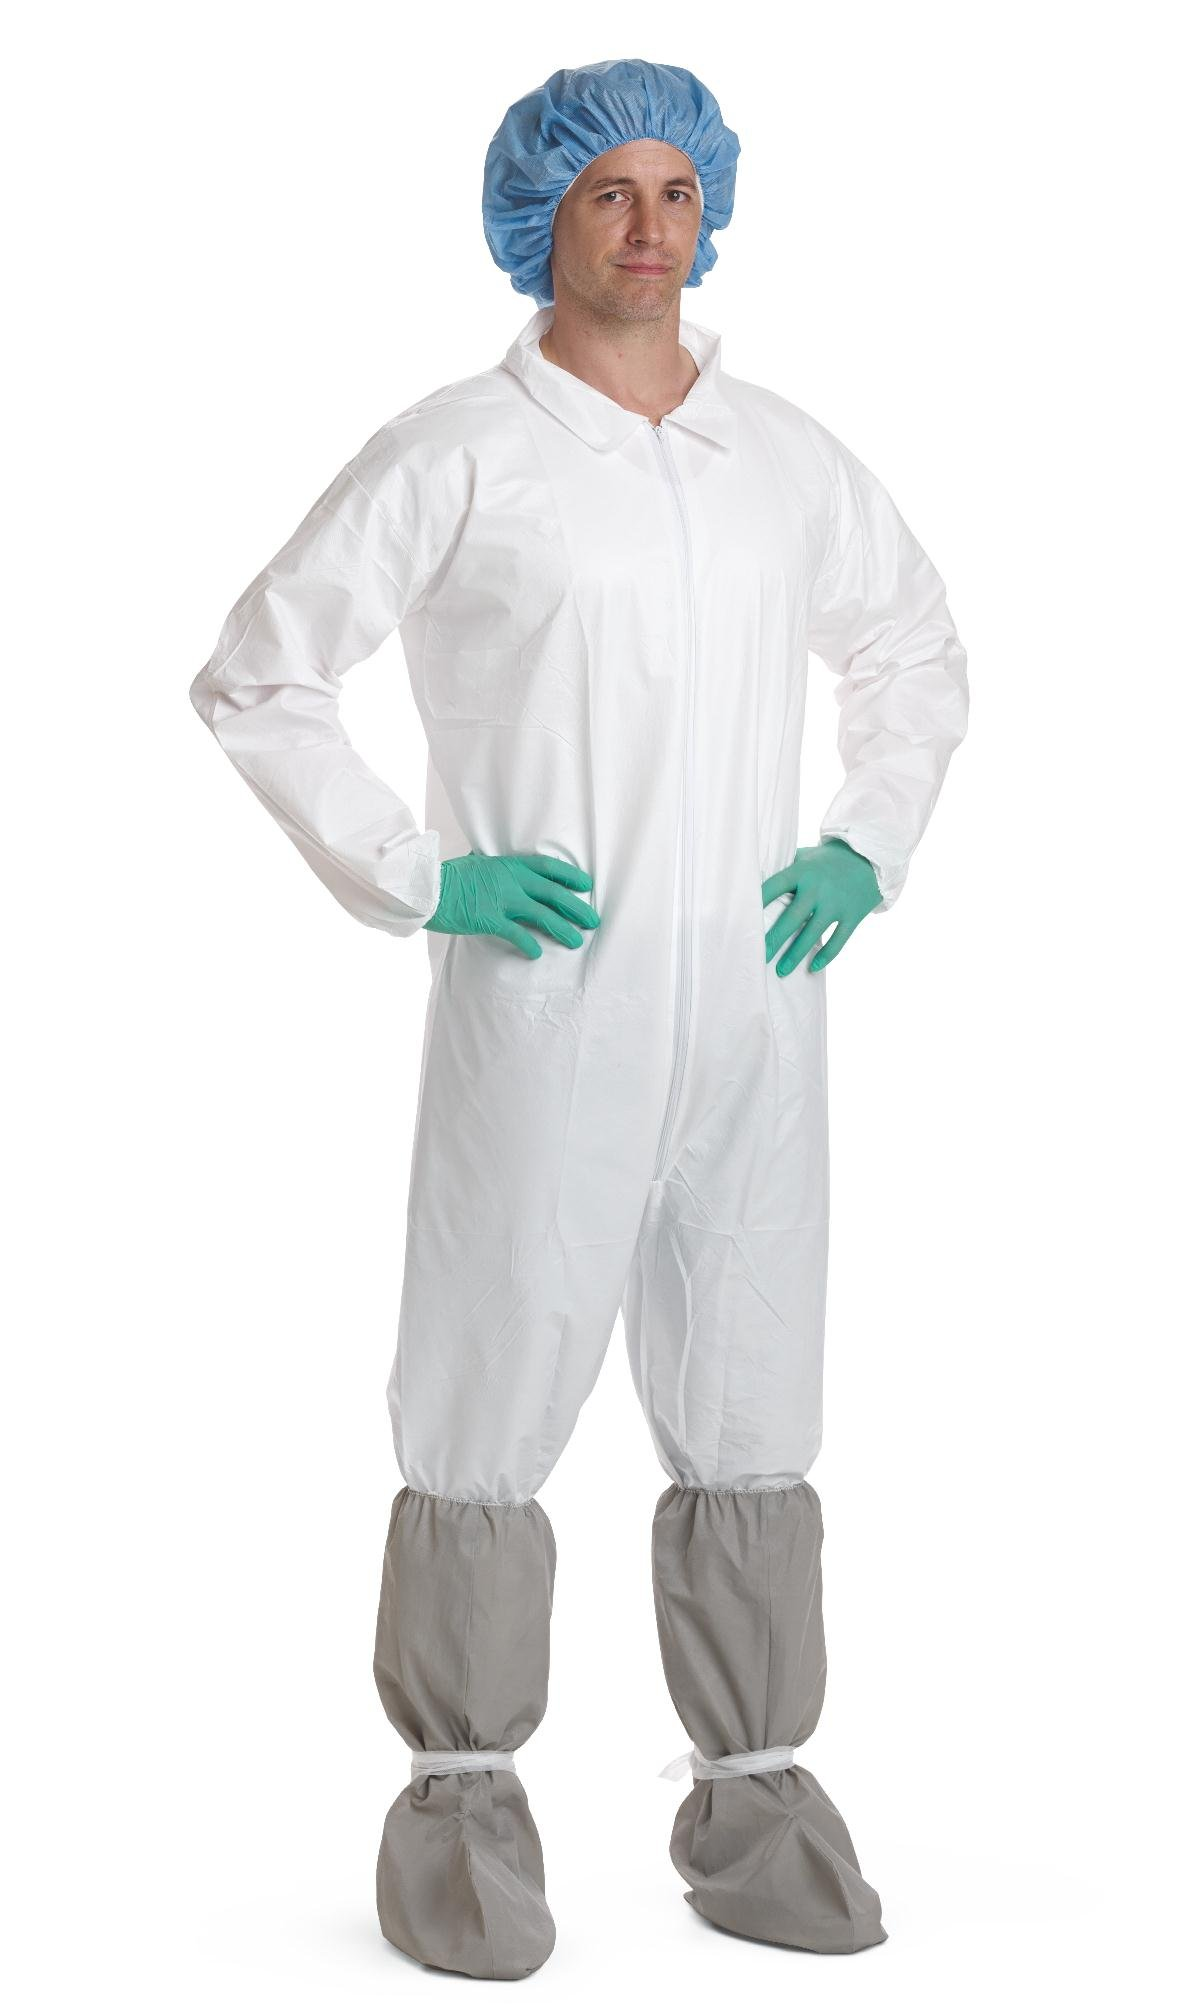 Medline NONCV940M Static-Dissipative Microporous Breathable Coveralls, Elastic Wrist/Ankle, Medium, White (Pack of 25)